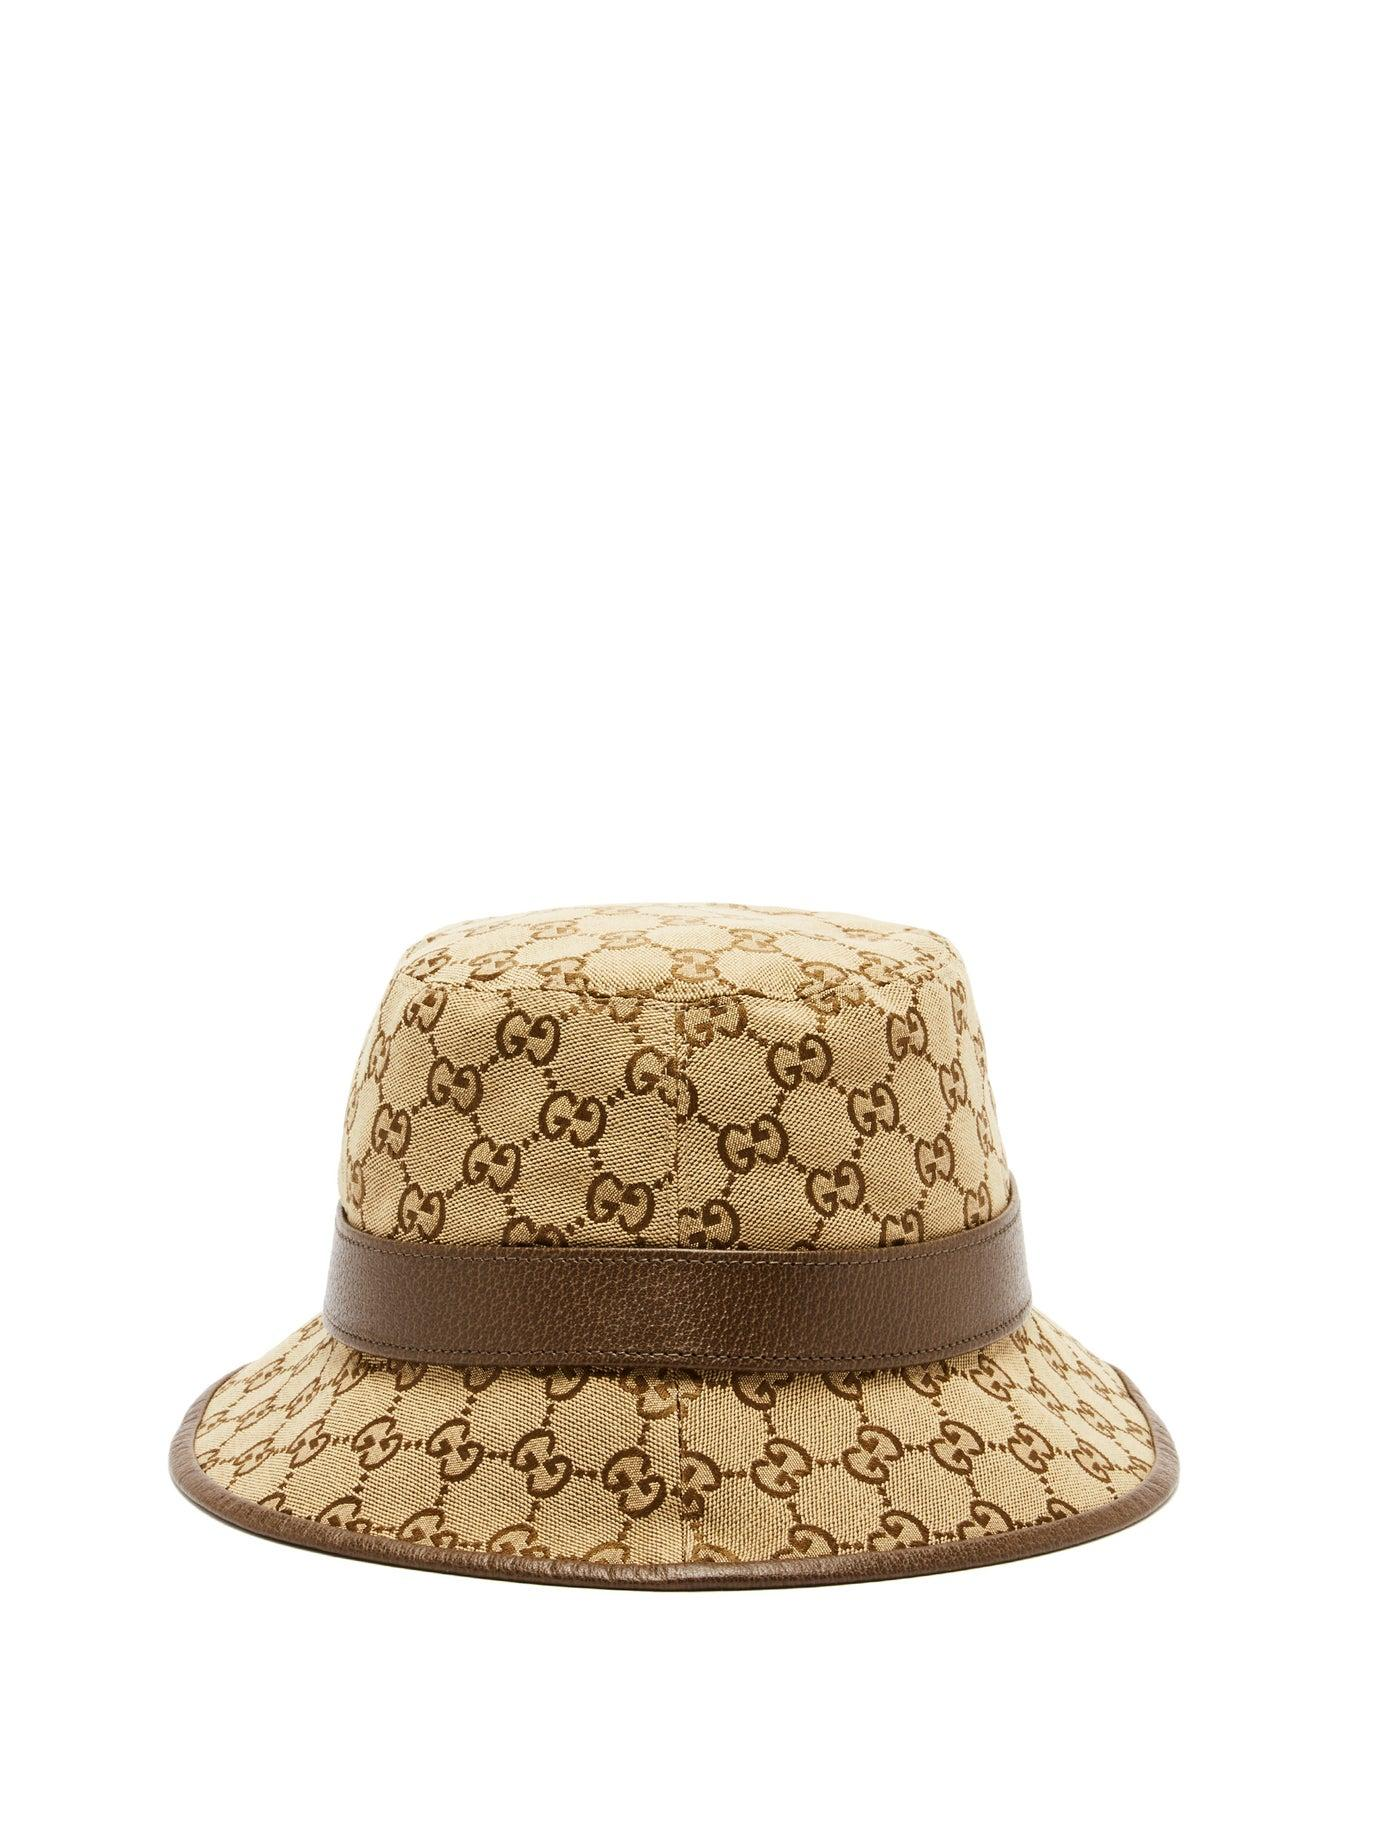 4254b51a4 Gucci Gg Supreme Canvas Bucket Hat in Natural for Men - Lyst